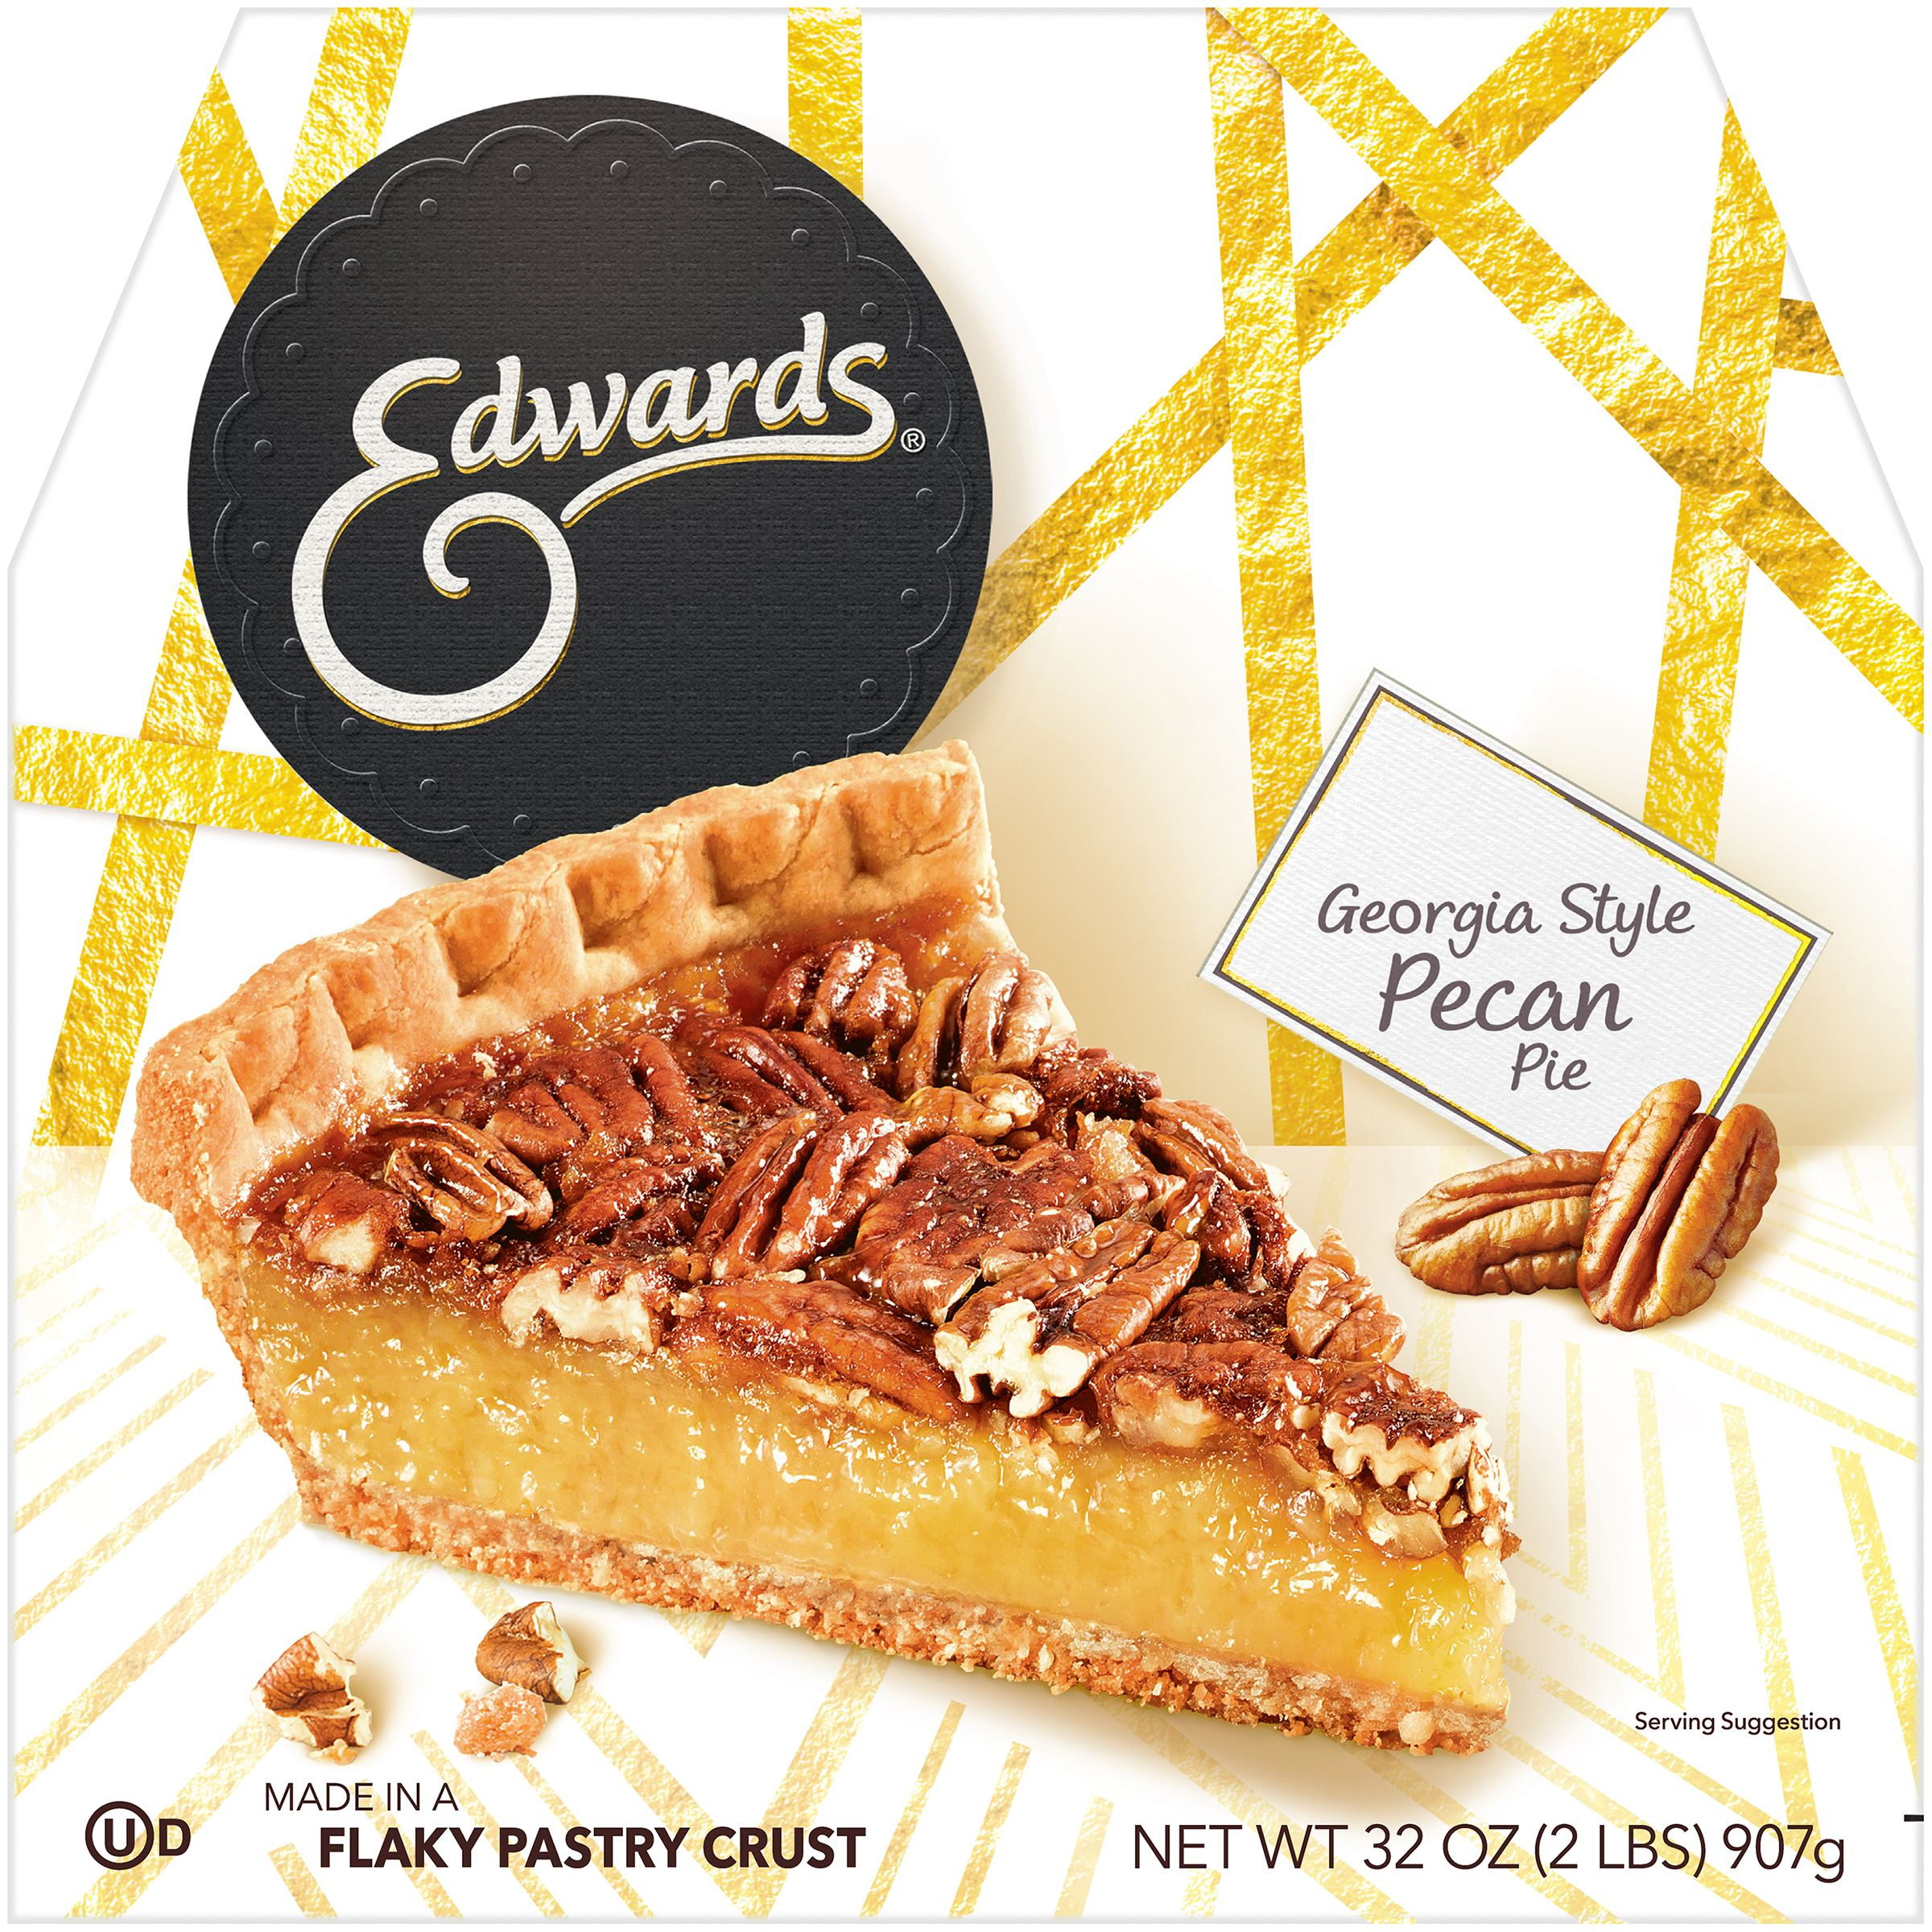 edwards georgia pecan pie 32 oz box walmart com